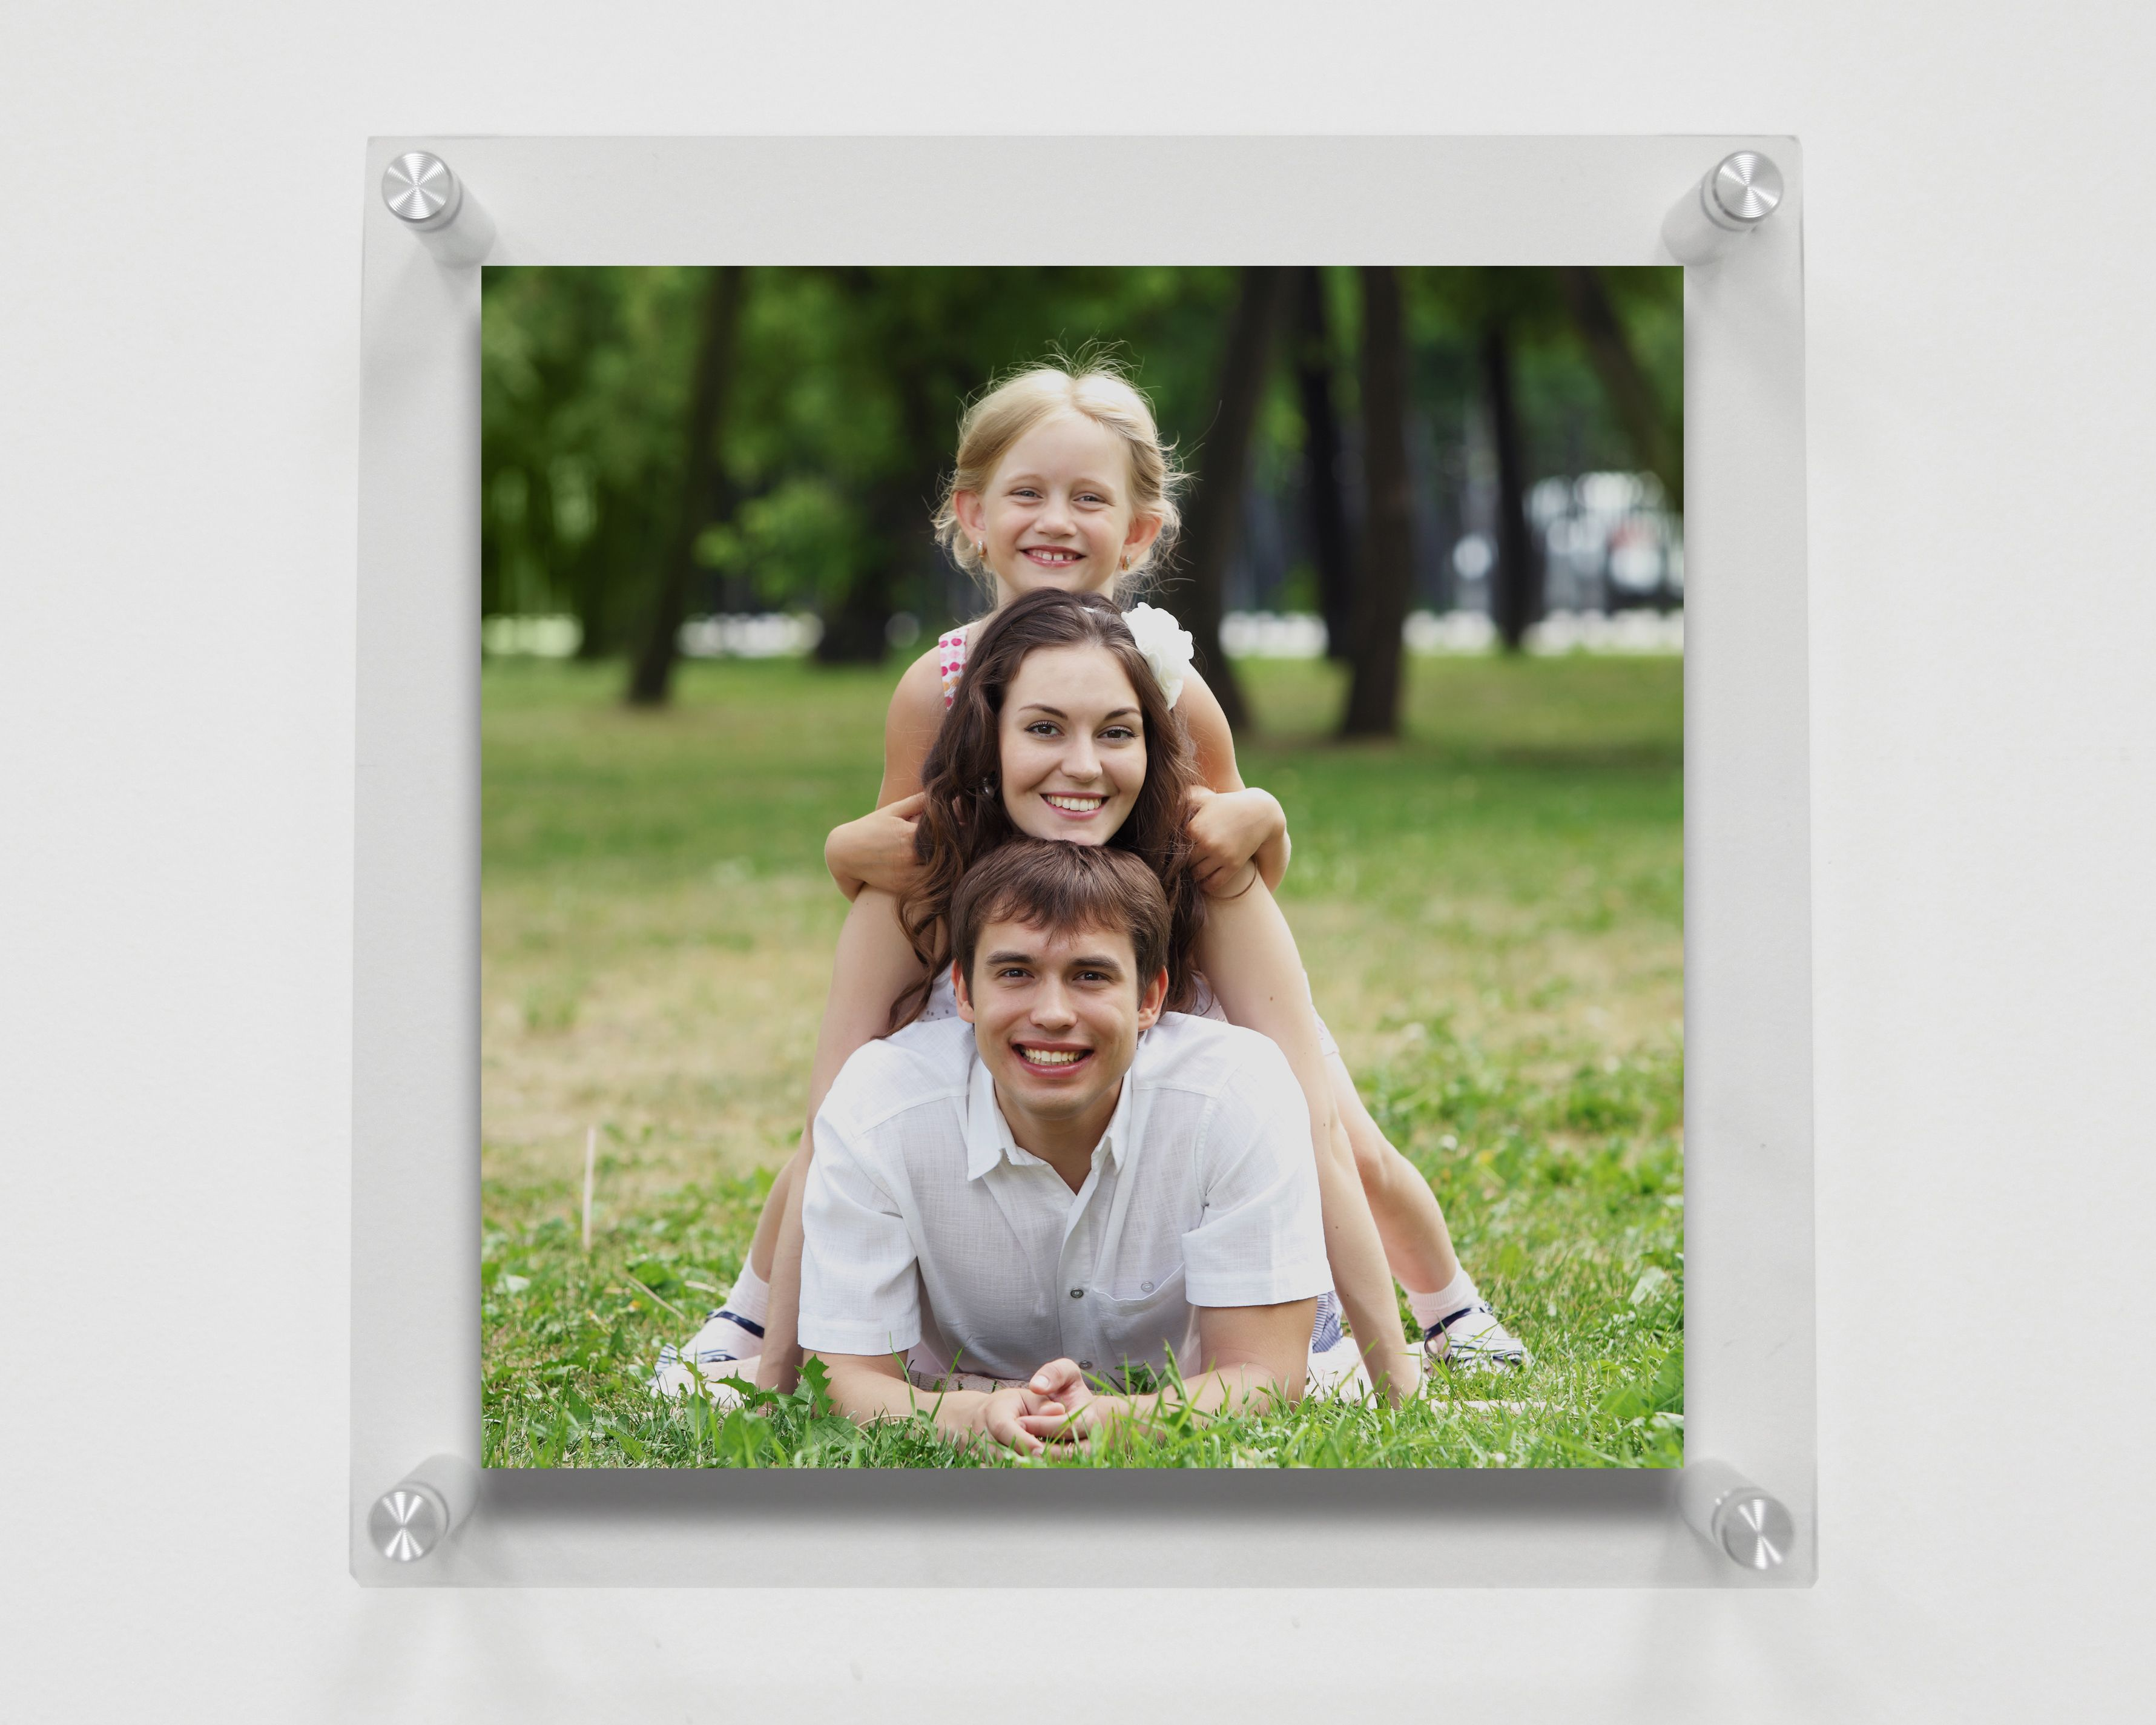 Floating Acrylic Frame Ideal For Any Square Photos Or Prints Including Sizes 8x8 10x10 Or 12x12 Floating Acrylic Frame Frames On Wall Acrylic Frames